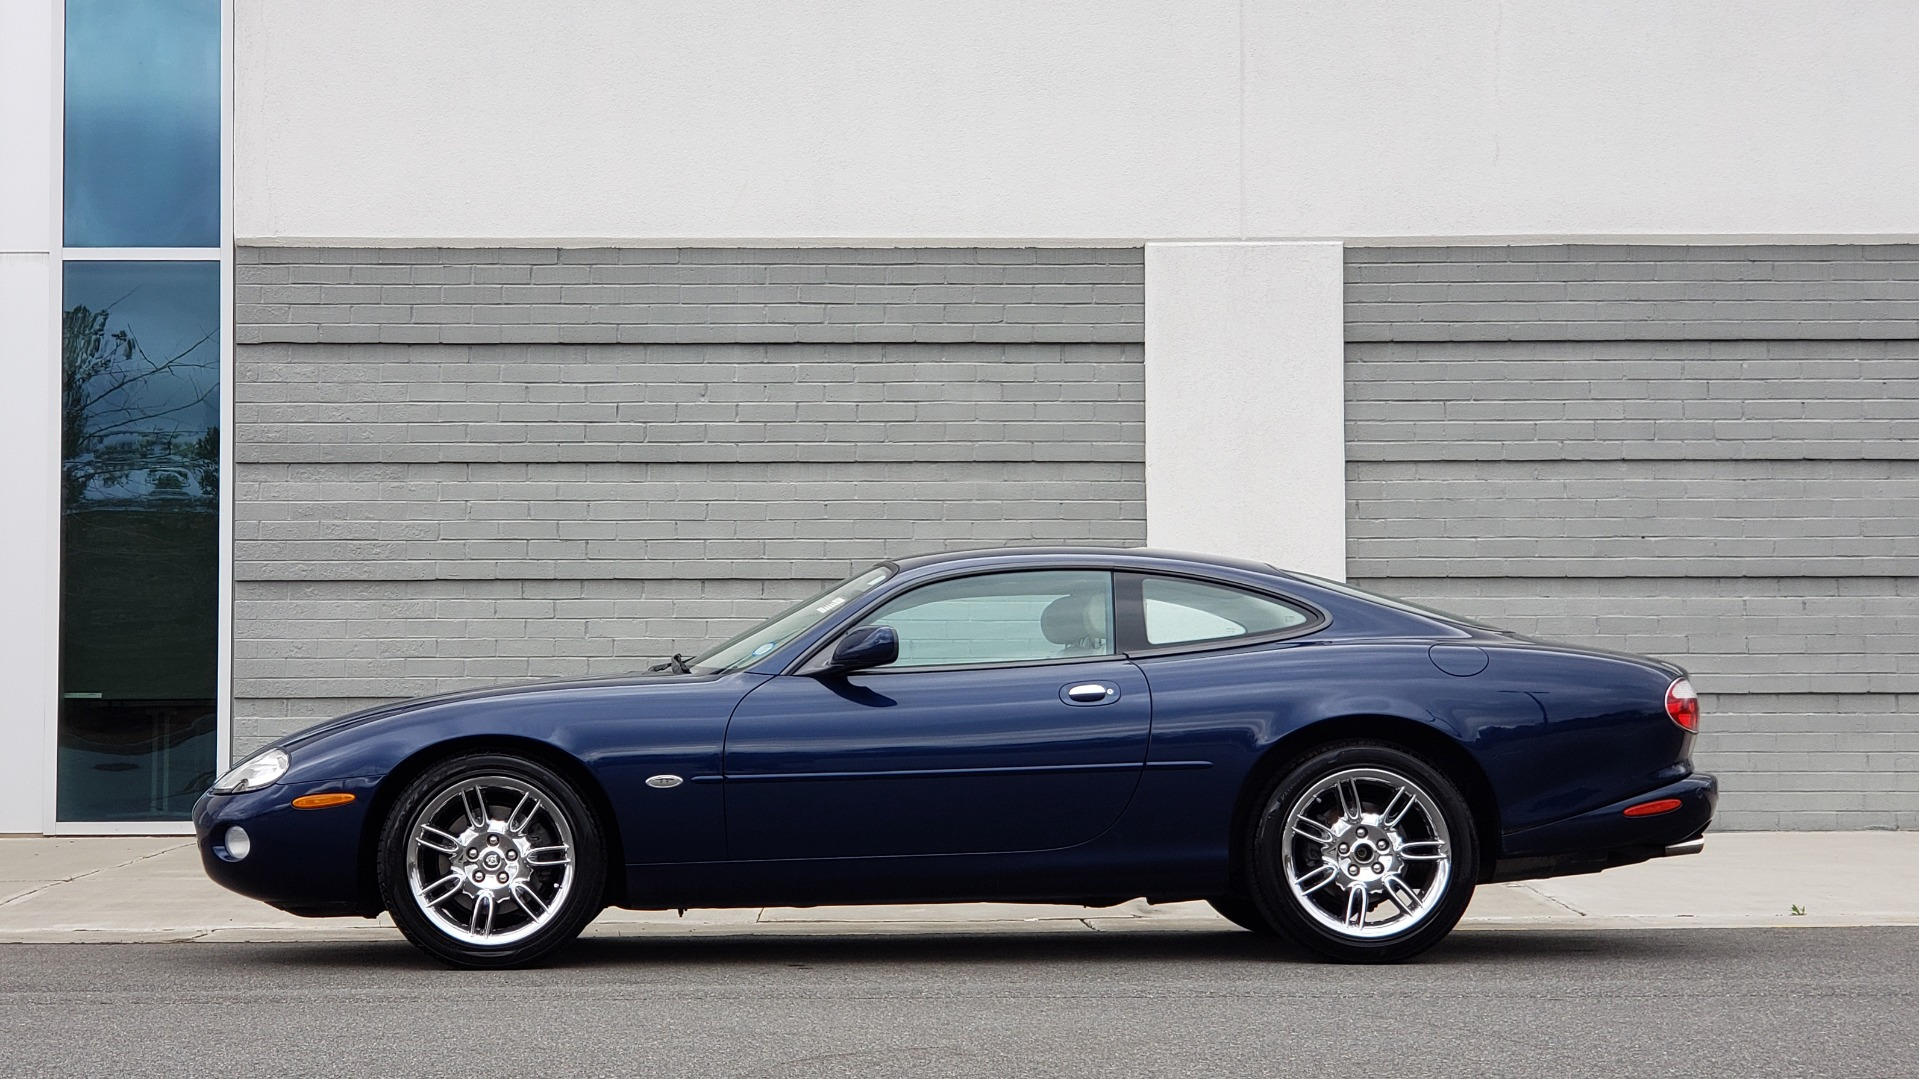 Used 2002 Jaguar XK8 COUPE / 4.0L V8 / 5-SPD AUTO / ALPINE SOUND / 18IN CHROME WHEELS for sale $16,450 at Formula Imports in Charlotte NC 28227 5